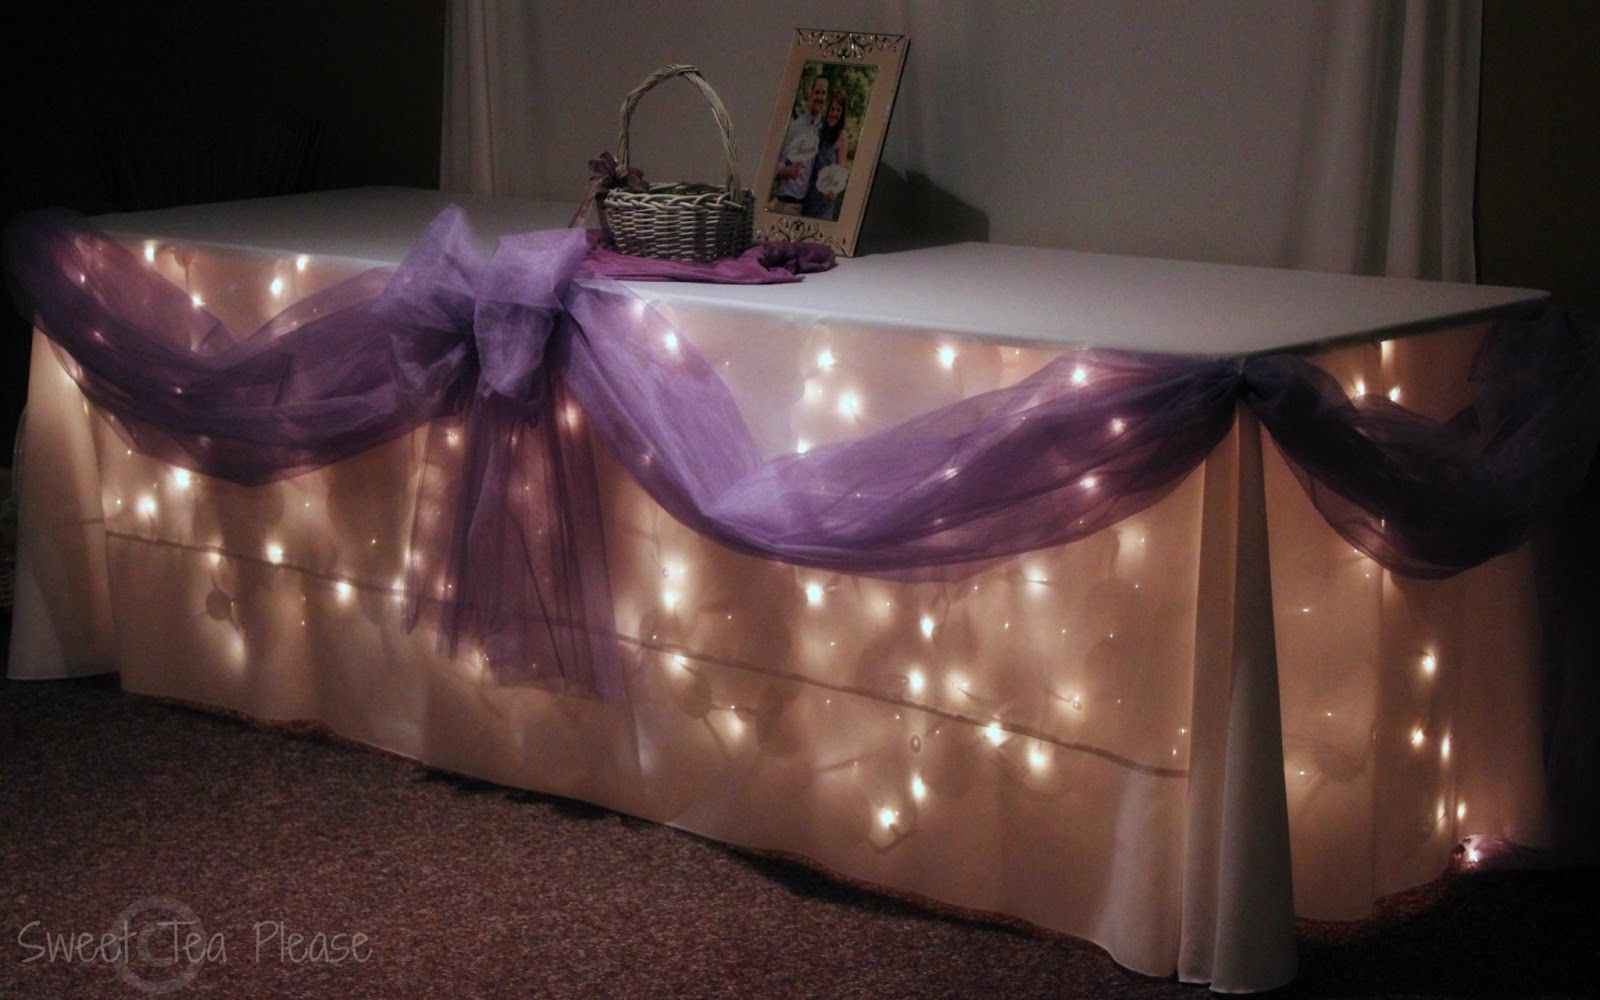 Wedding decorations tulle and lights  Decorating a Cake Table With Lights and Tulle  A Tutorial  mesas